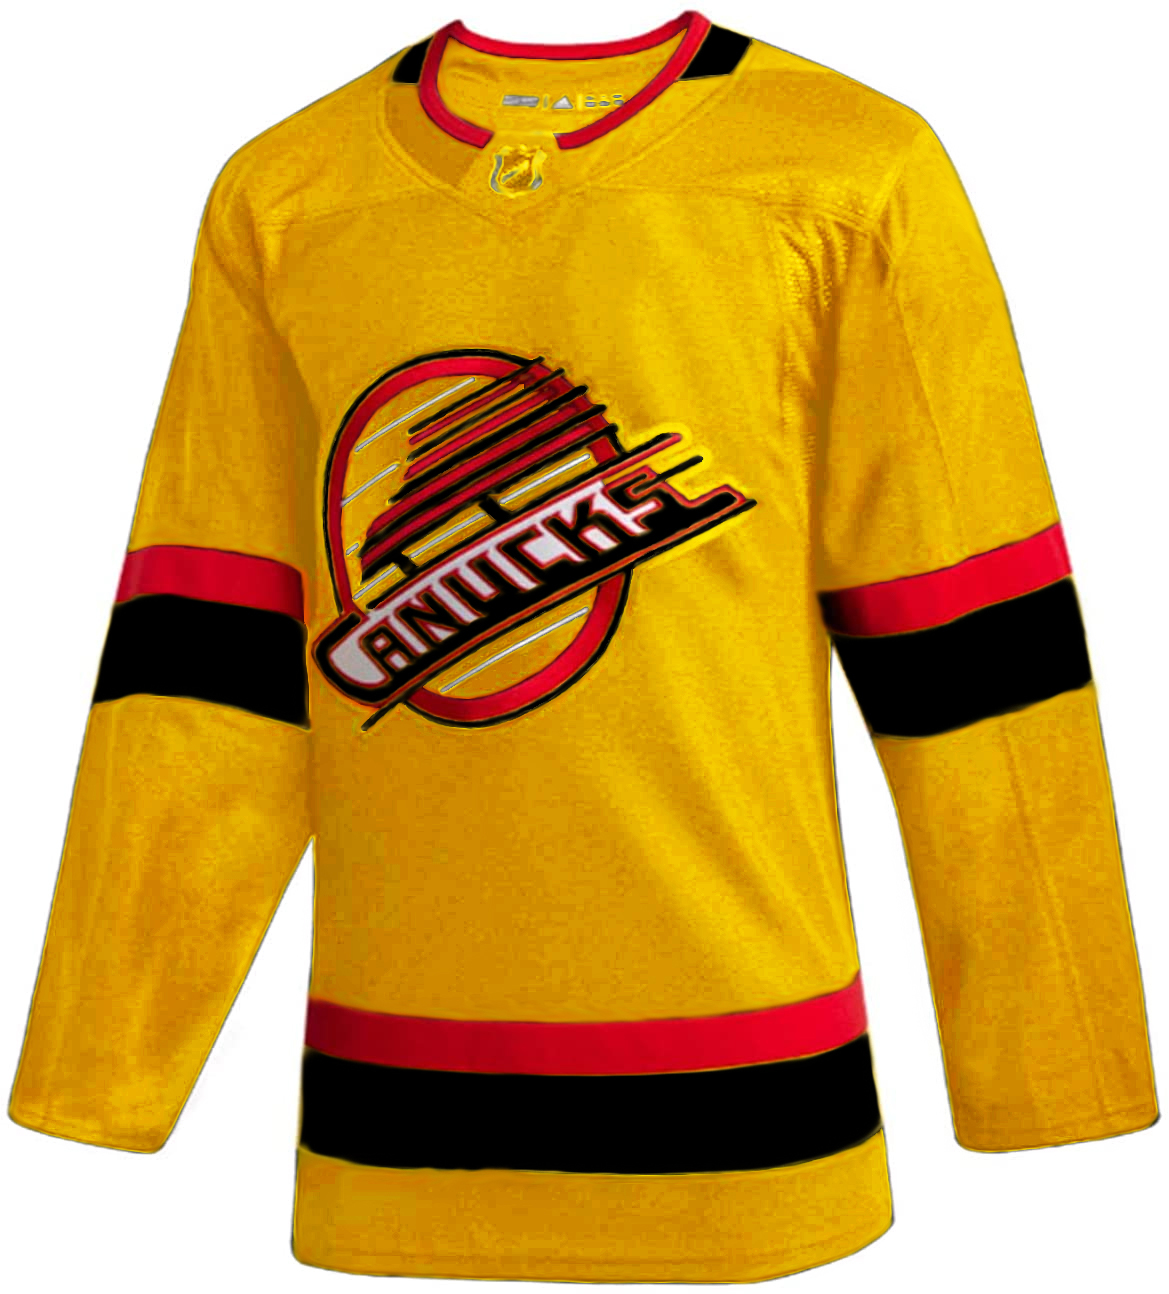 Canucks Rumoured To Be Unveiling New Reverse Retro Jersey Next Season Offside